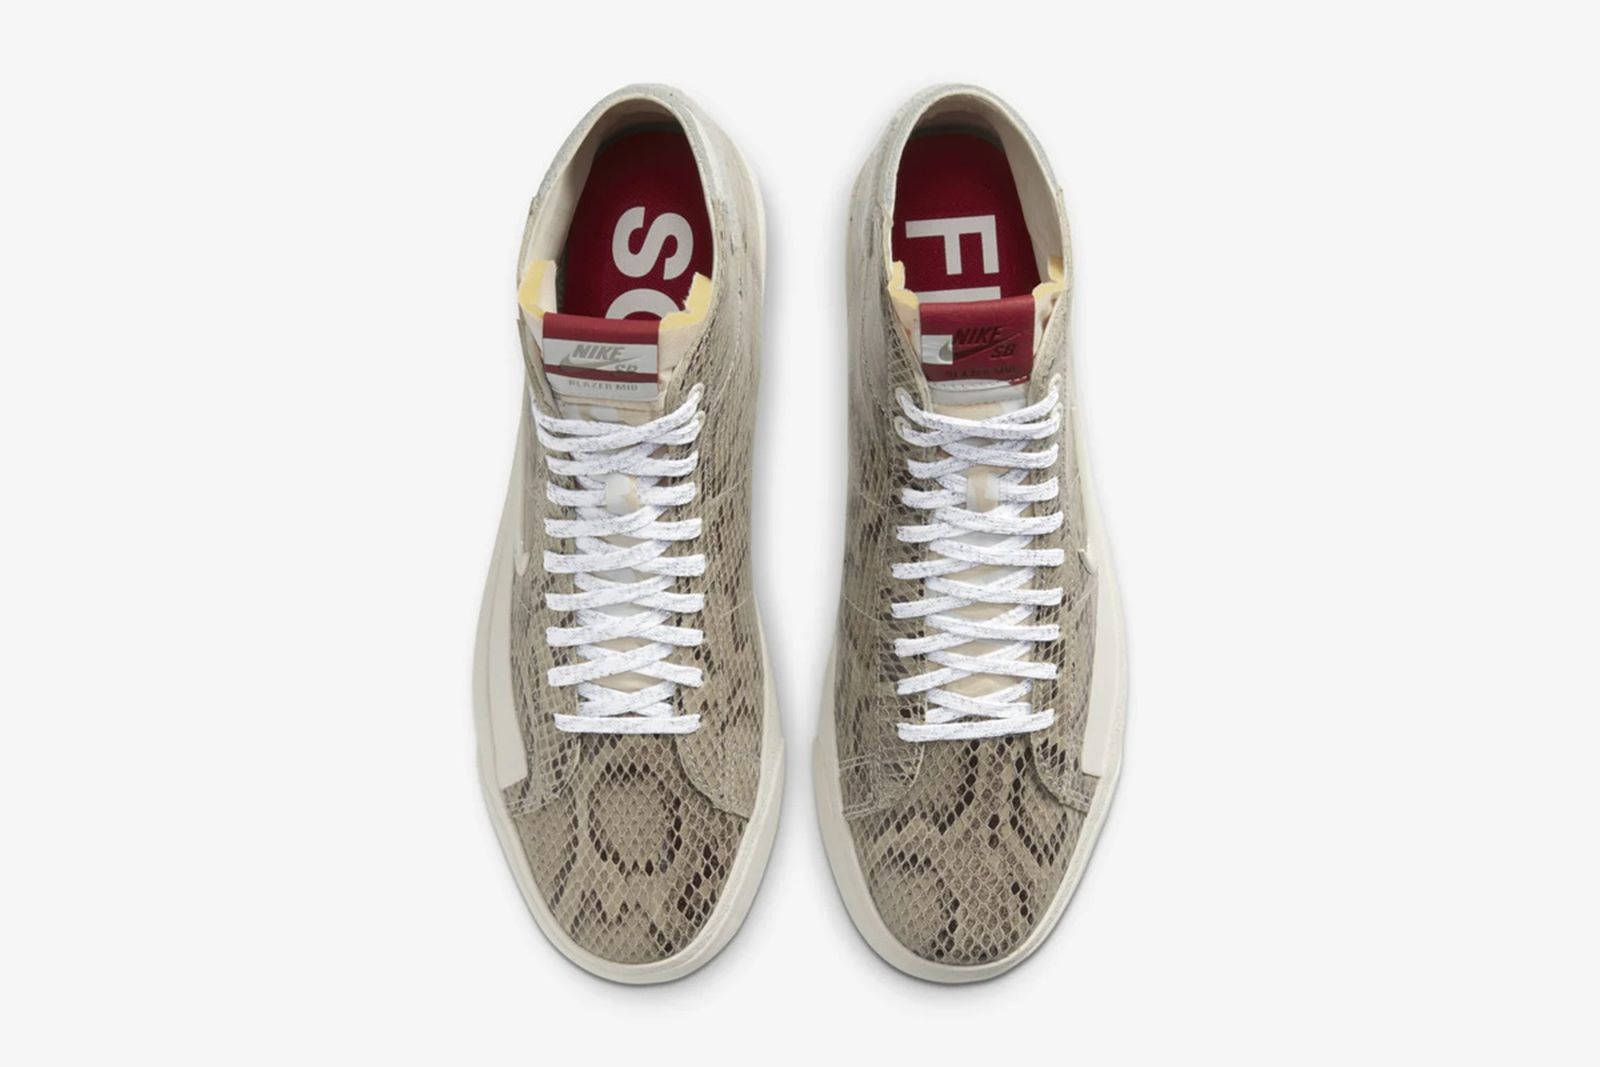 soulland-nike-blazer-mid-release-date-price-product-01